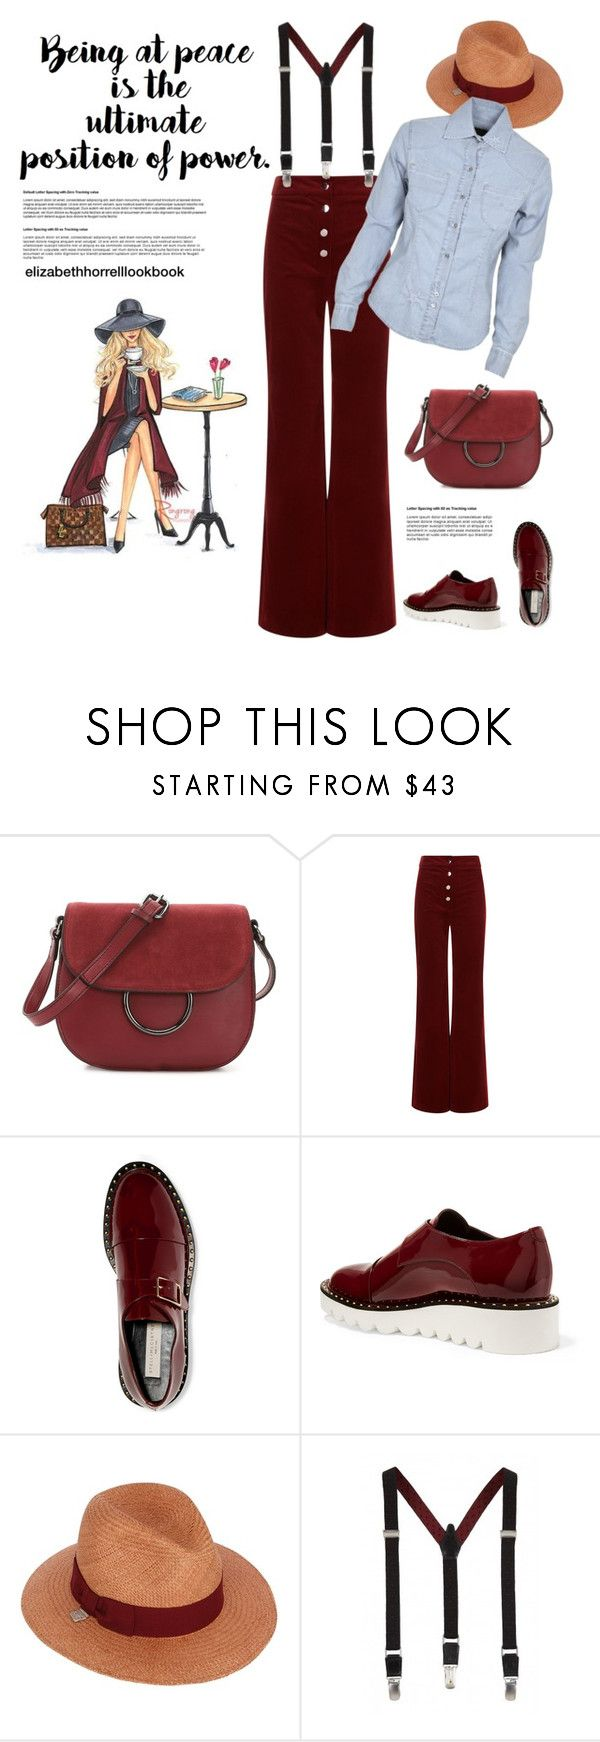 """""""STYLED BY LIZ"""" by elizabethhorrell ❤ liked on Polyvore featuring French Connection, Vanessa Bruno, STELLA McCARTNEY, Alex and Fred Perry"""